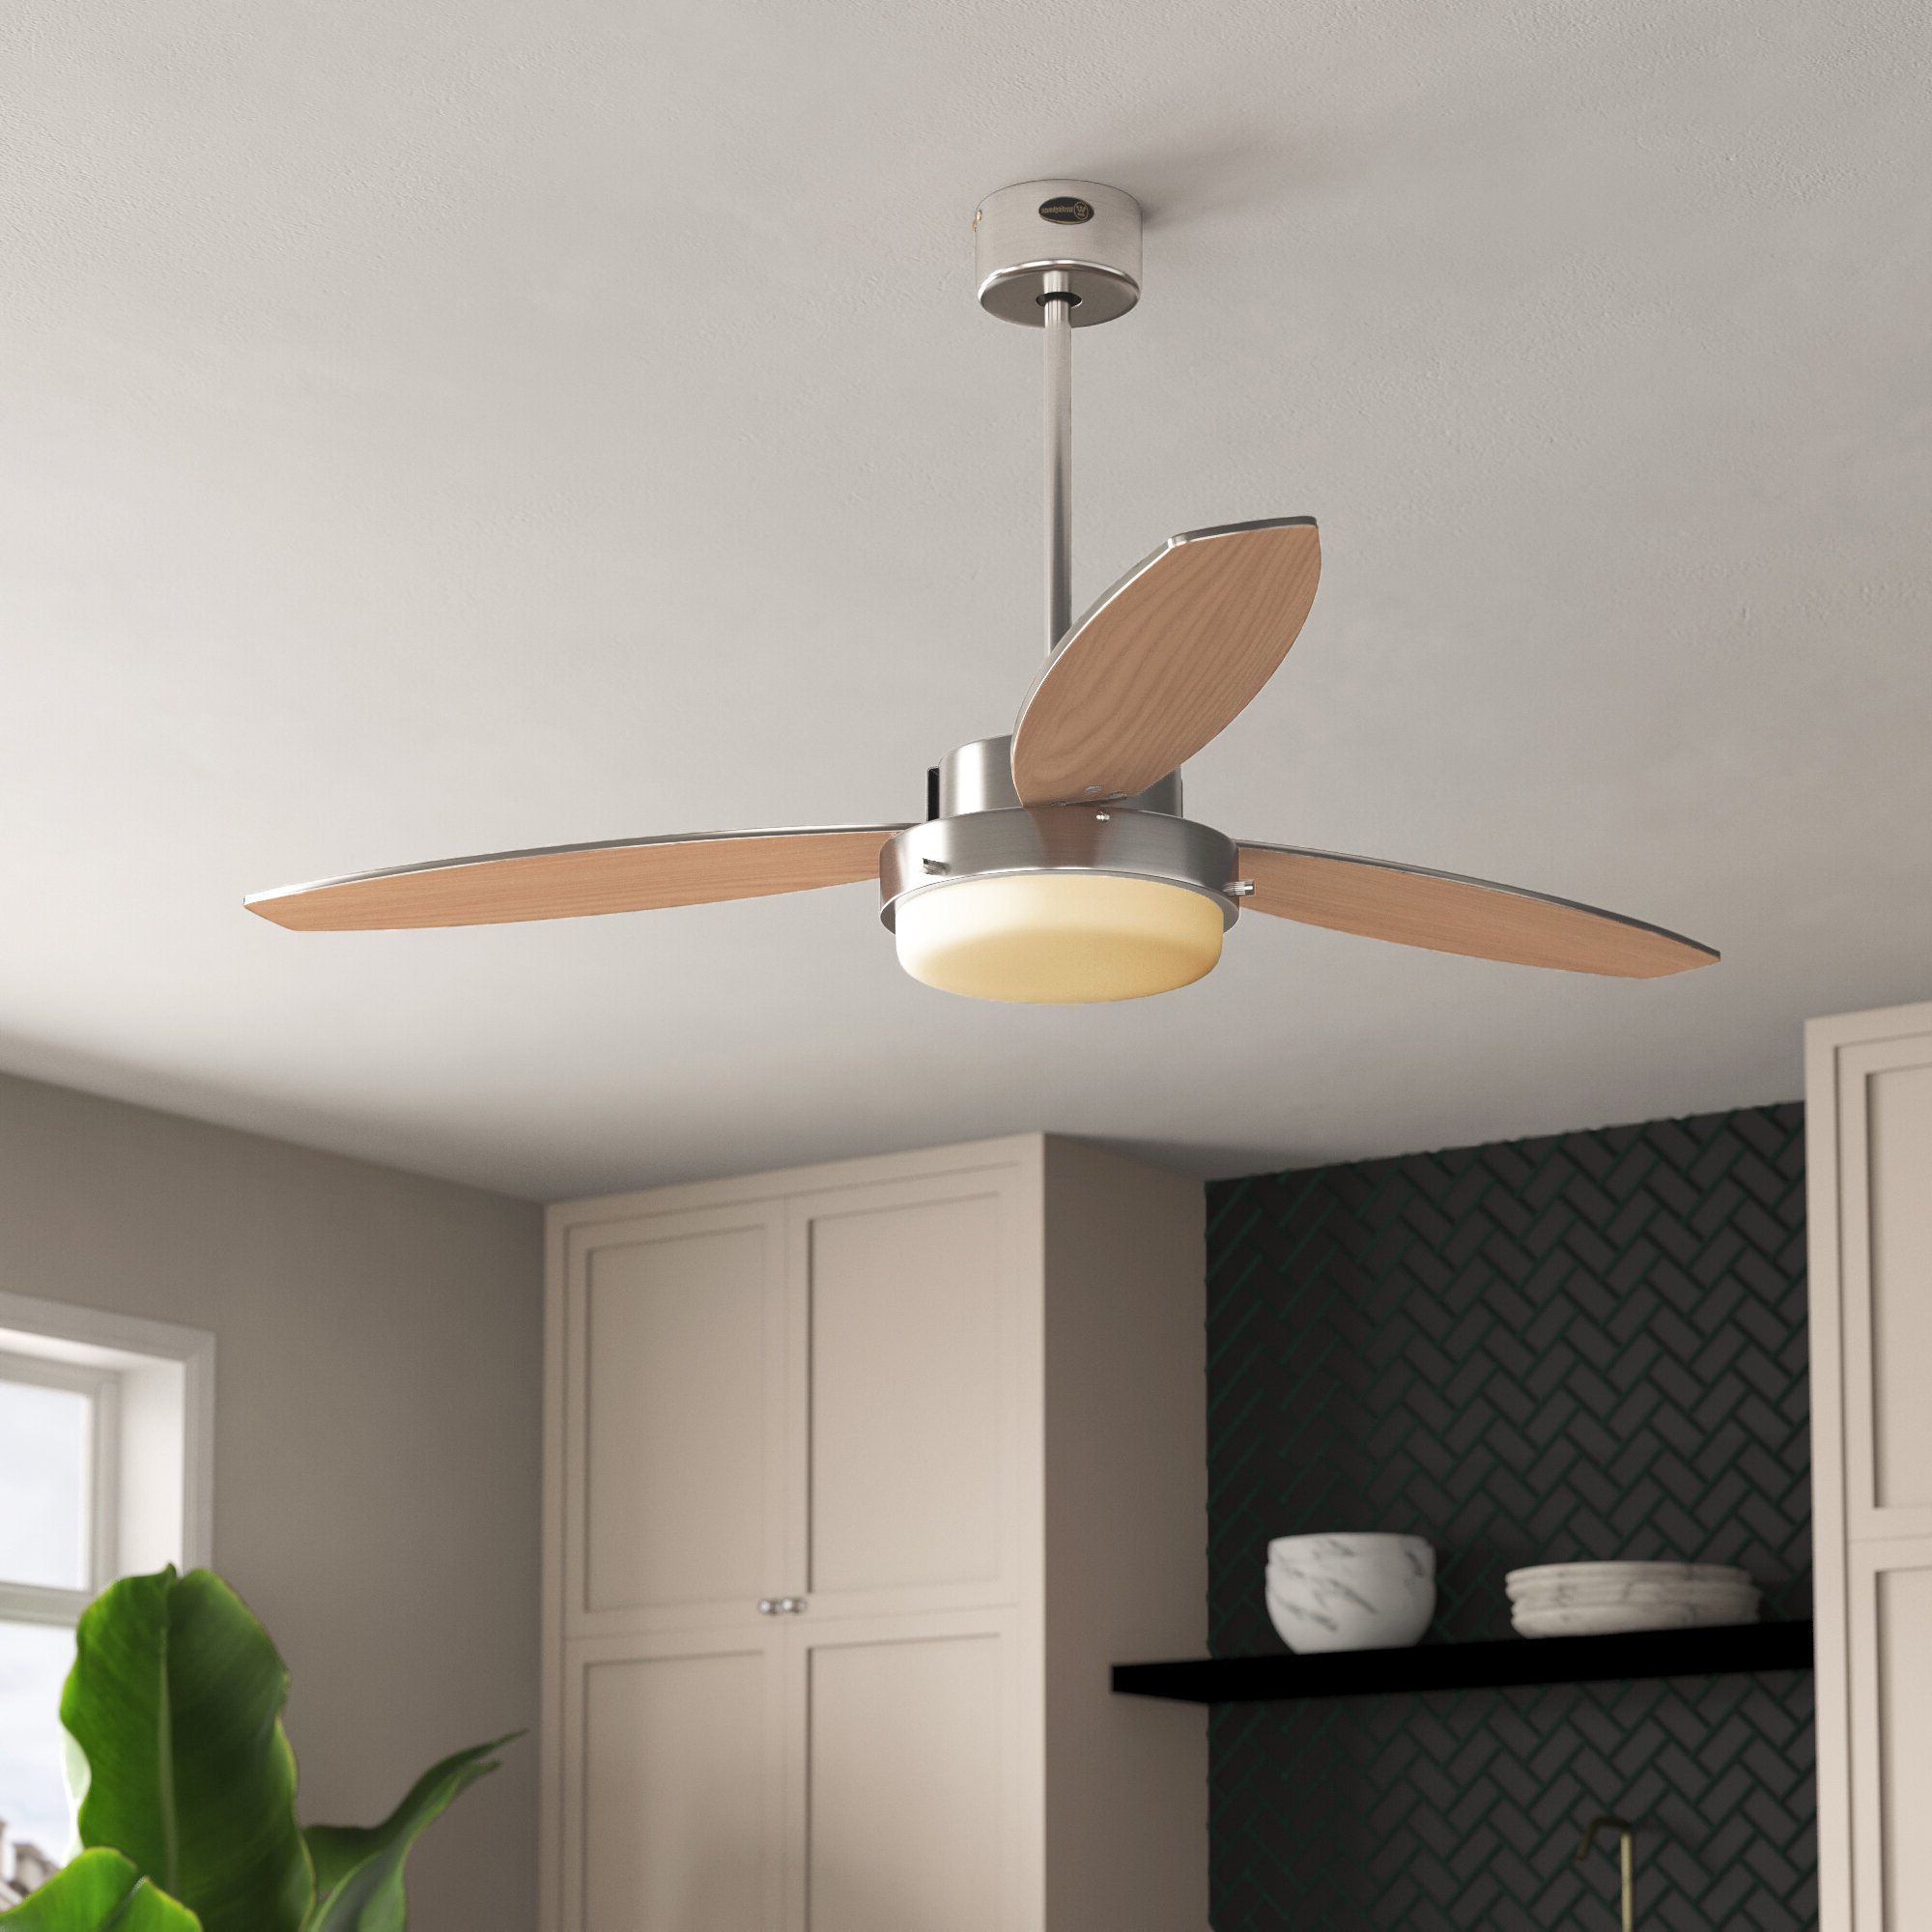 """52"""" Corsa Two Light Reversible Plywood 3 Blade Ceiling Fan, Light Kit Included Pertaining To Preferred Corsa 3 Blade Ceiling Fans (View 7 of 20)"""